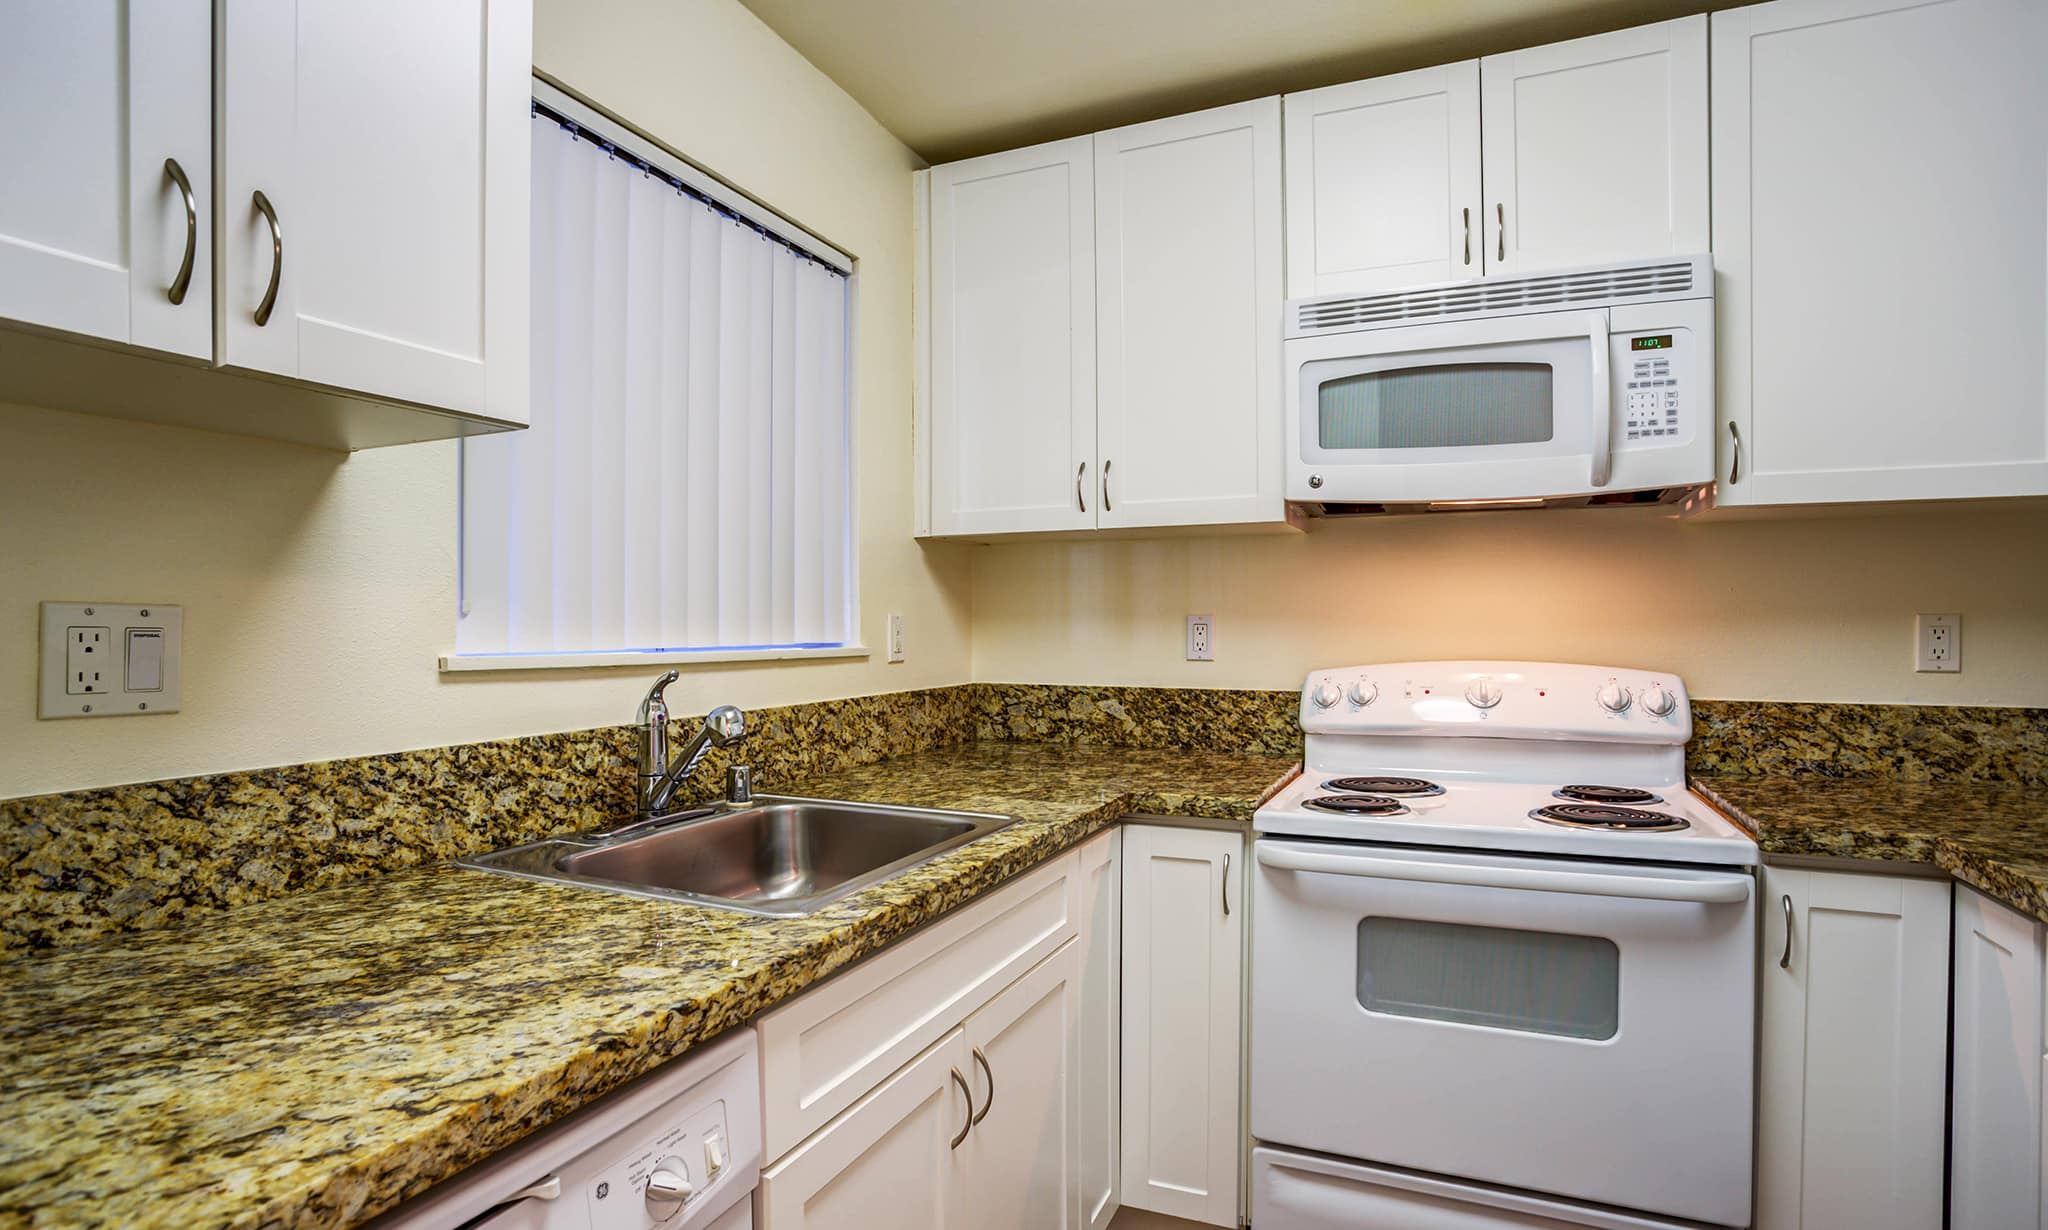 Parker Palo Alto Apartments apartments in Palo Alto CA to rent photo 8